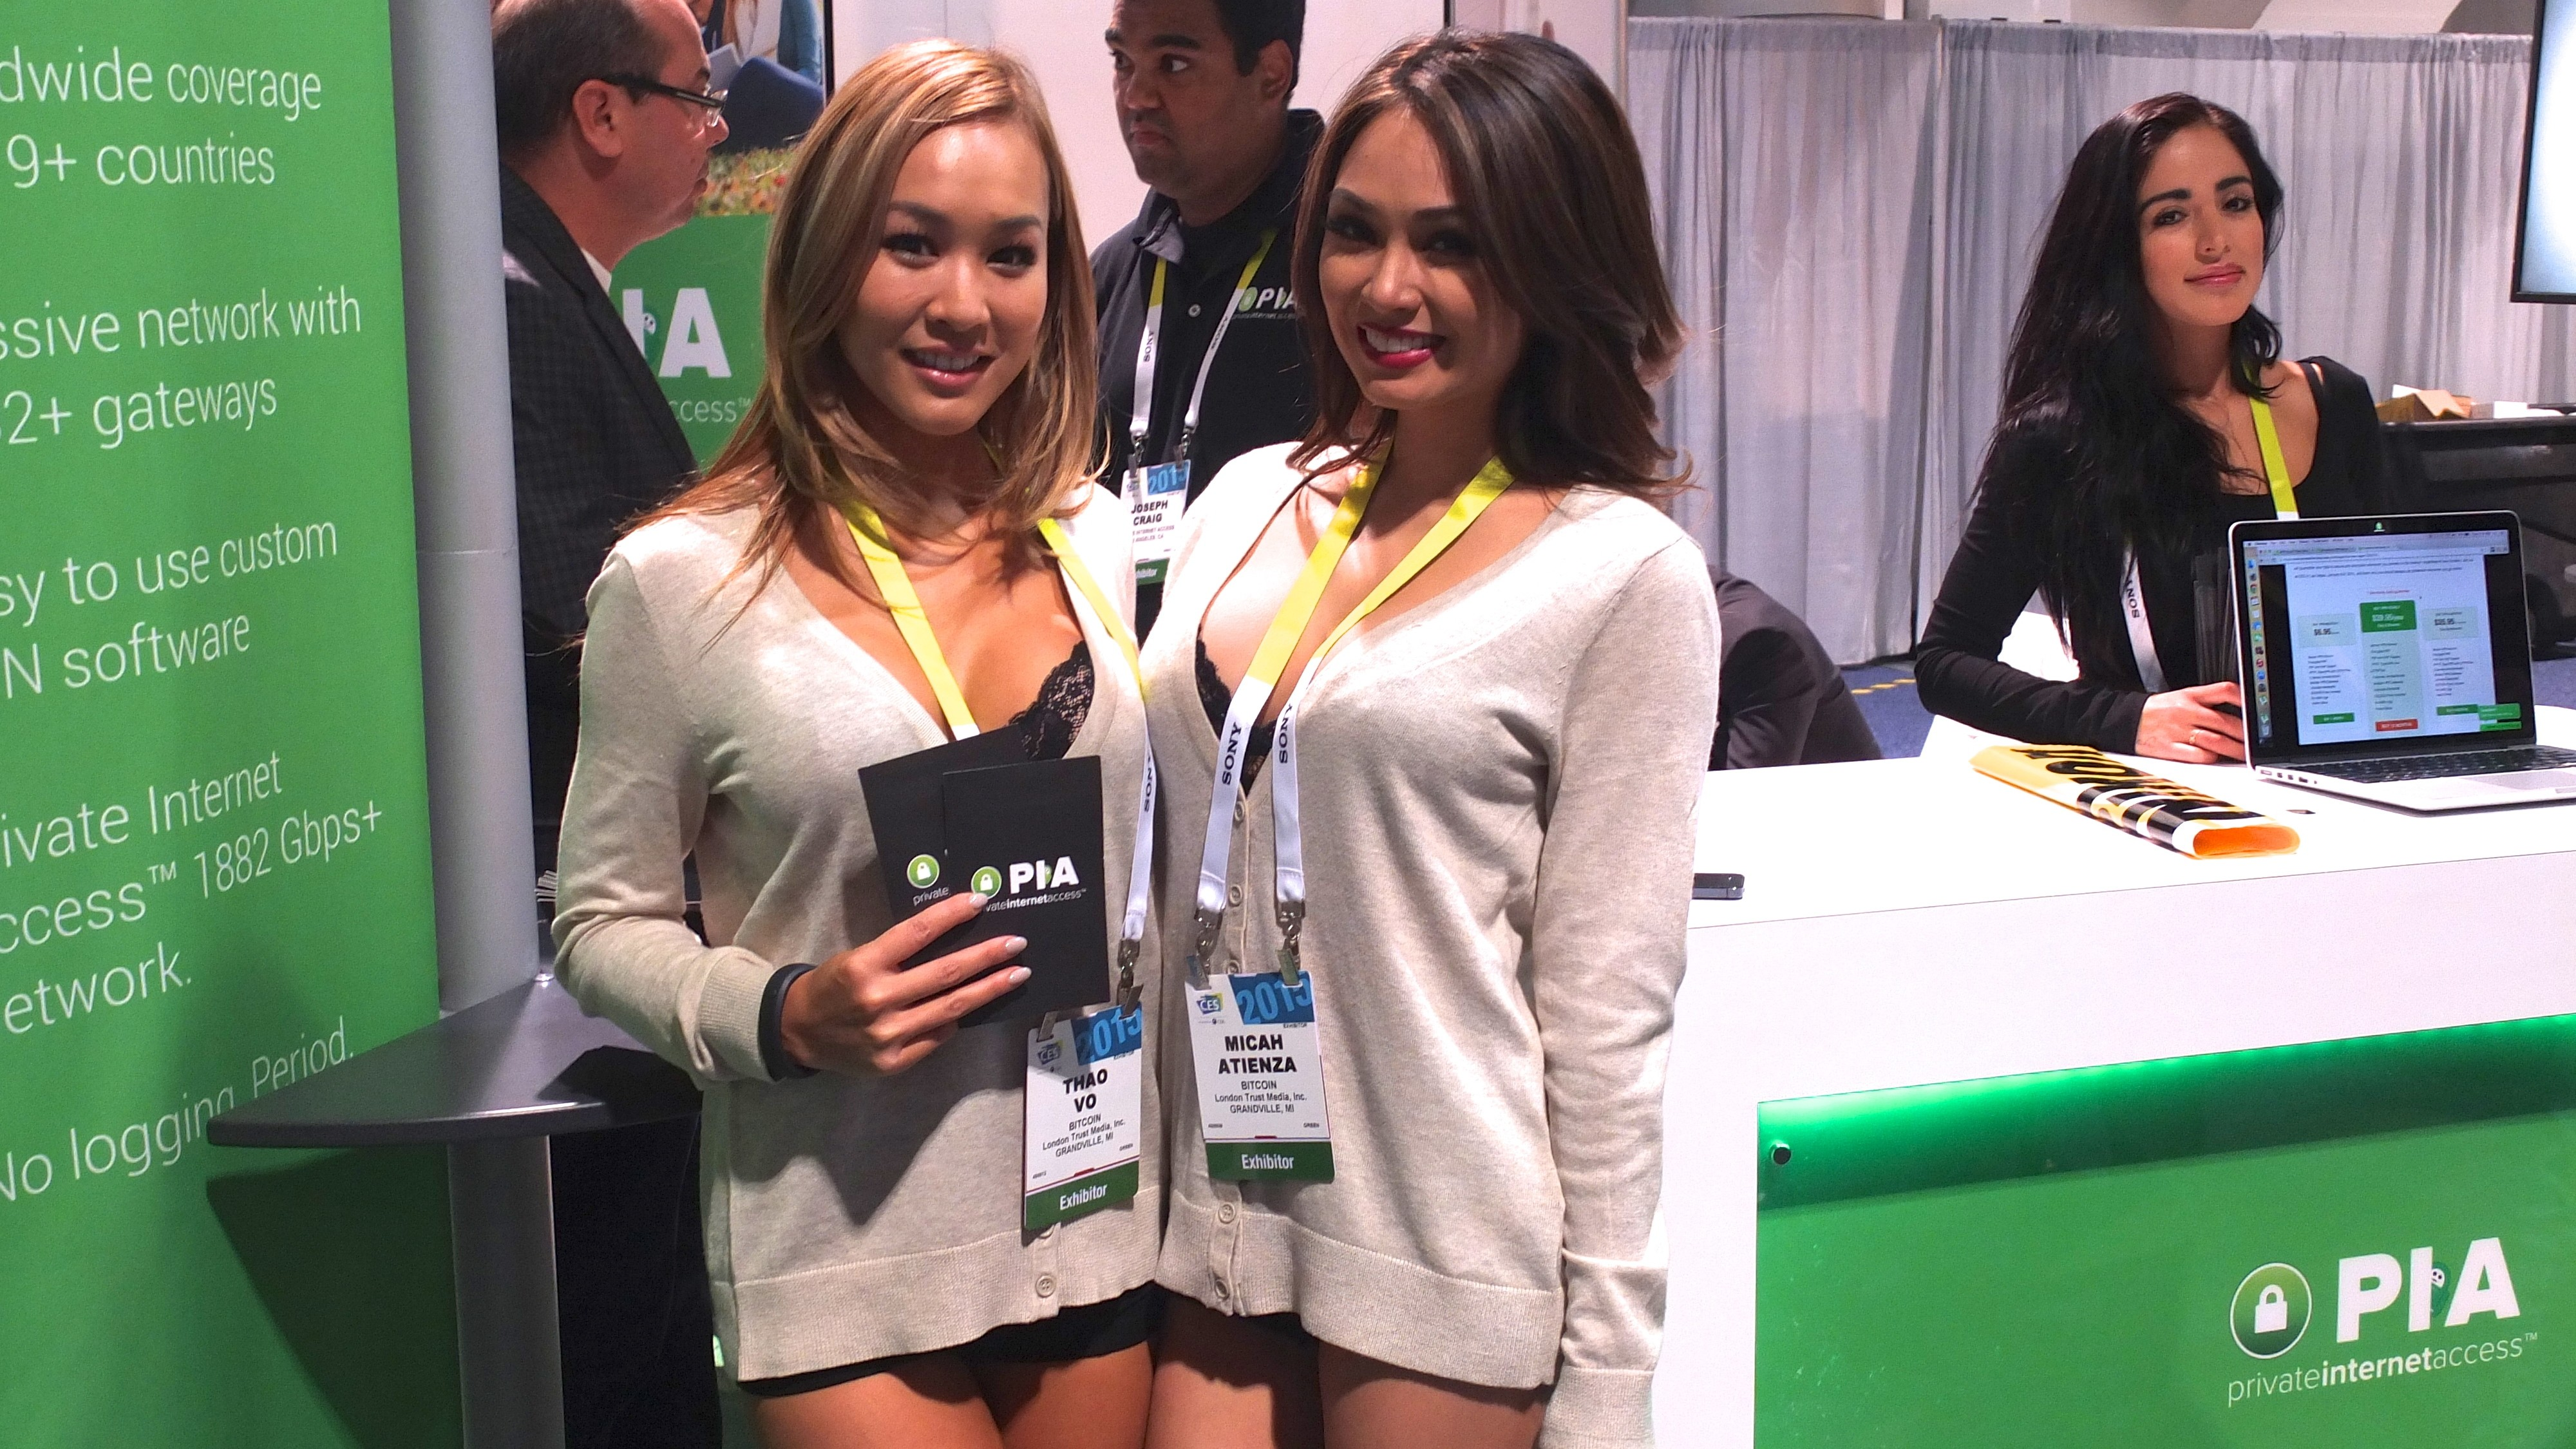 Horny CES Attendees Can't Stop Cruising Tinder